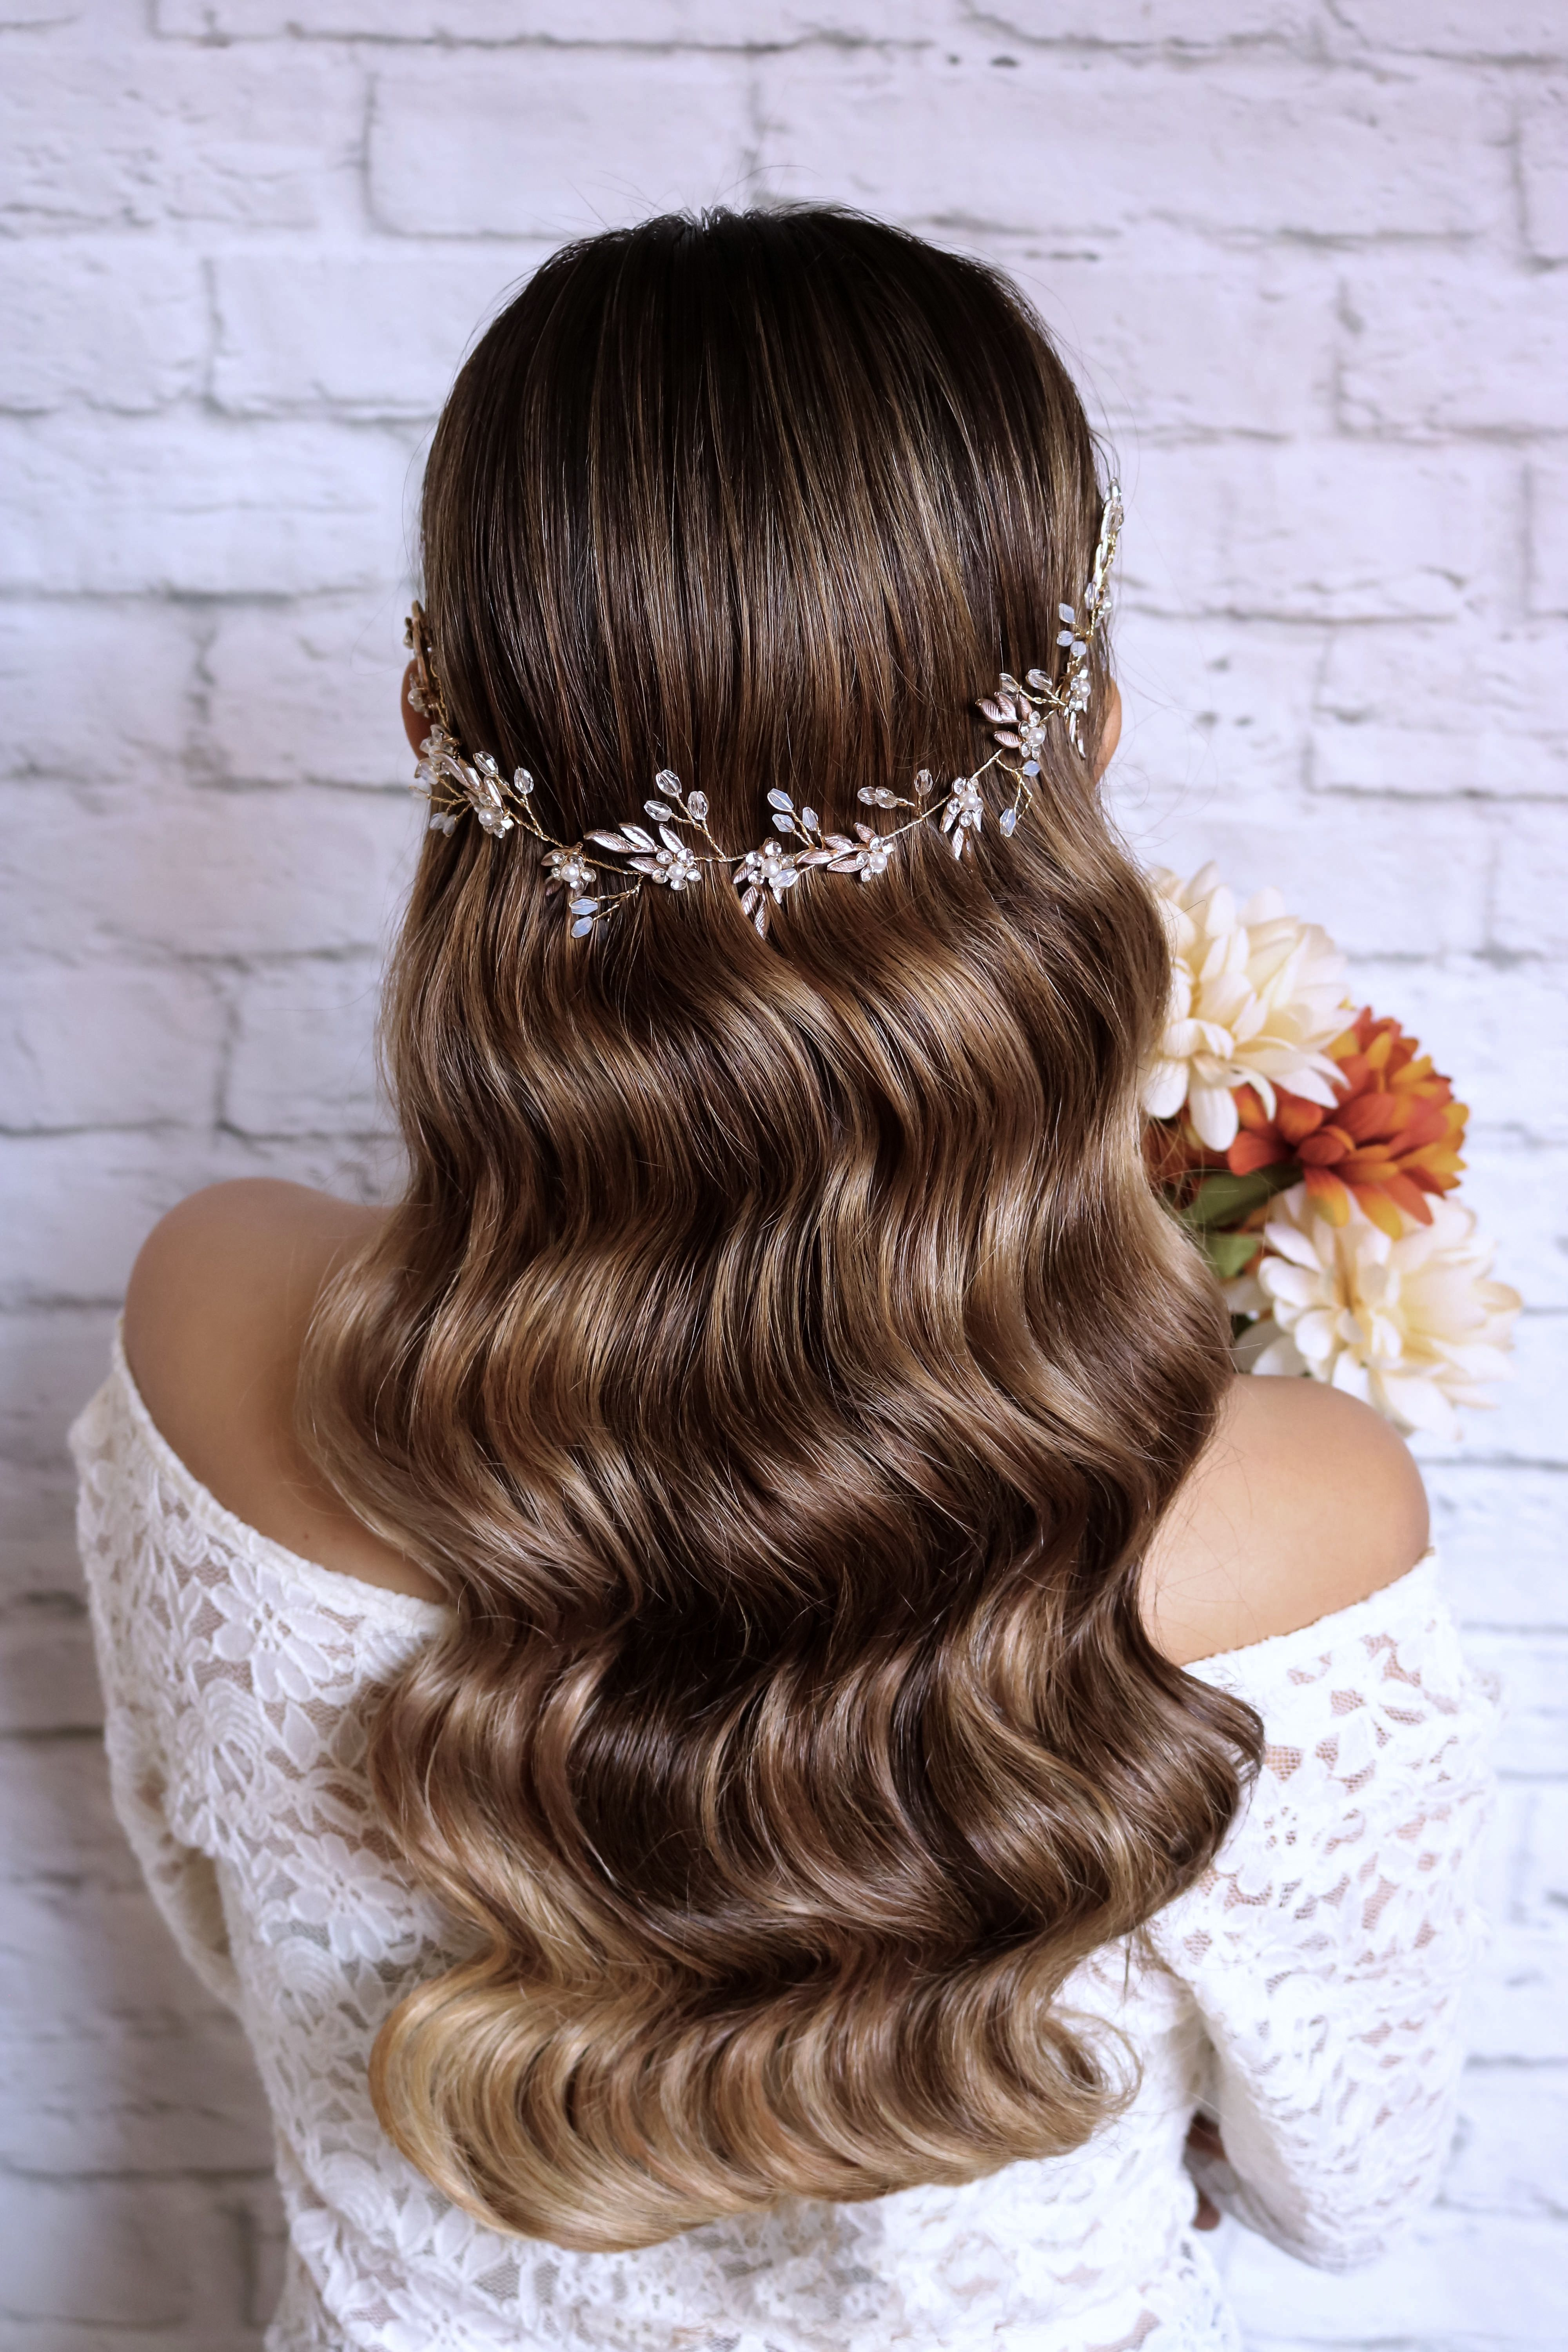 Wavy Wedding Hairstyle For The Romantic Bride Wedding Hair Inspiration Long Hair Styles Hair Styles